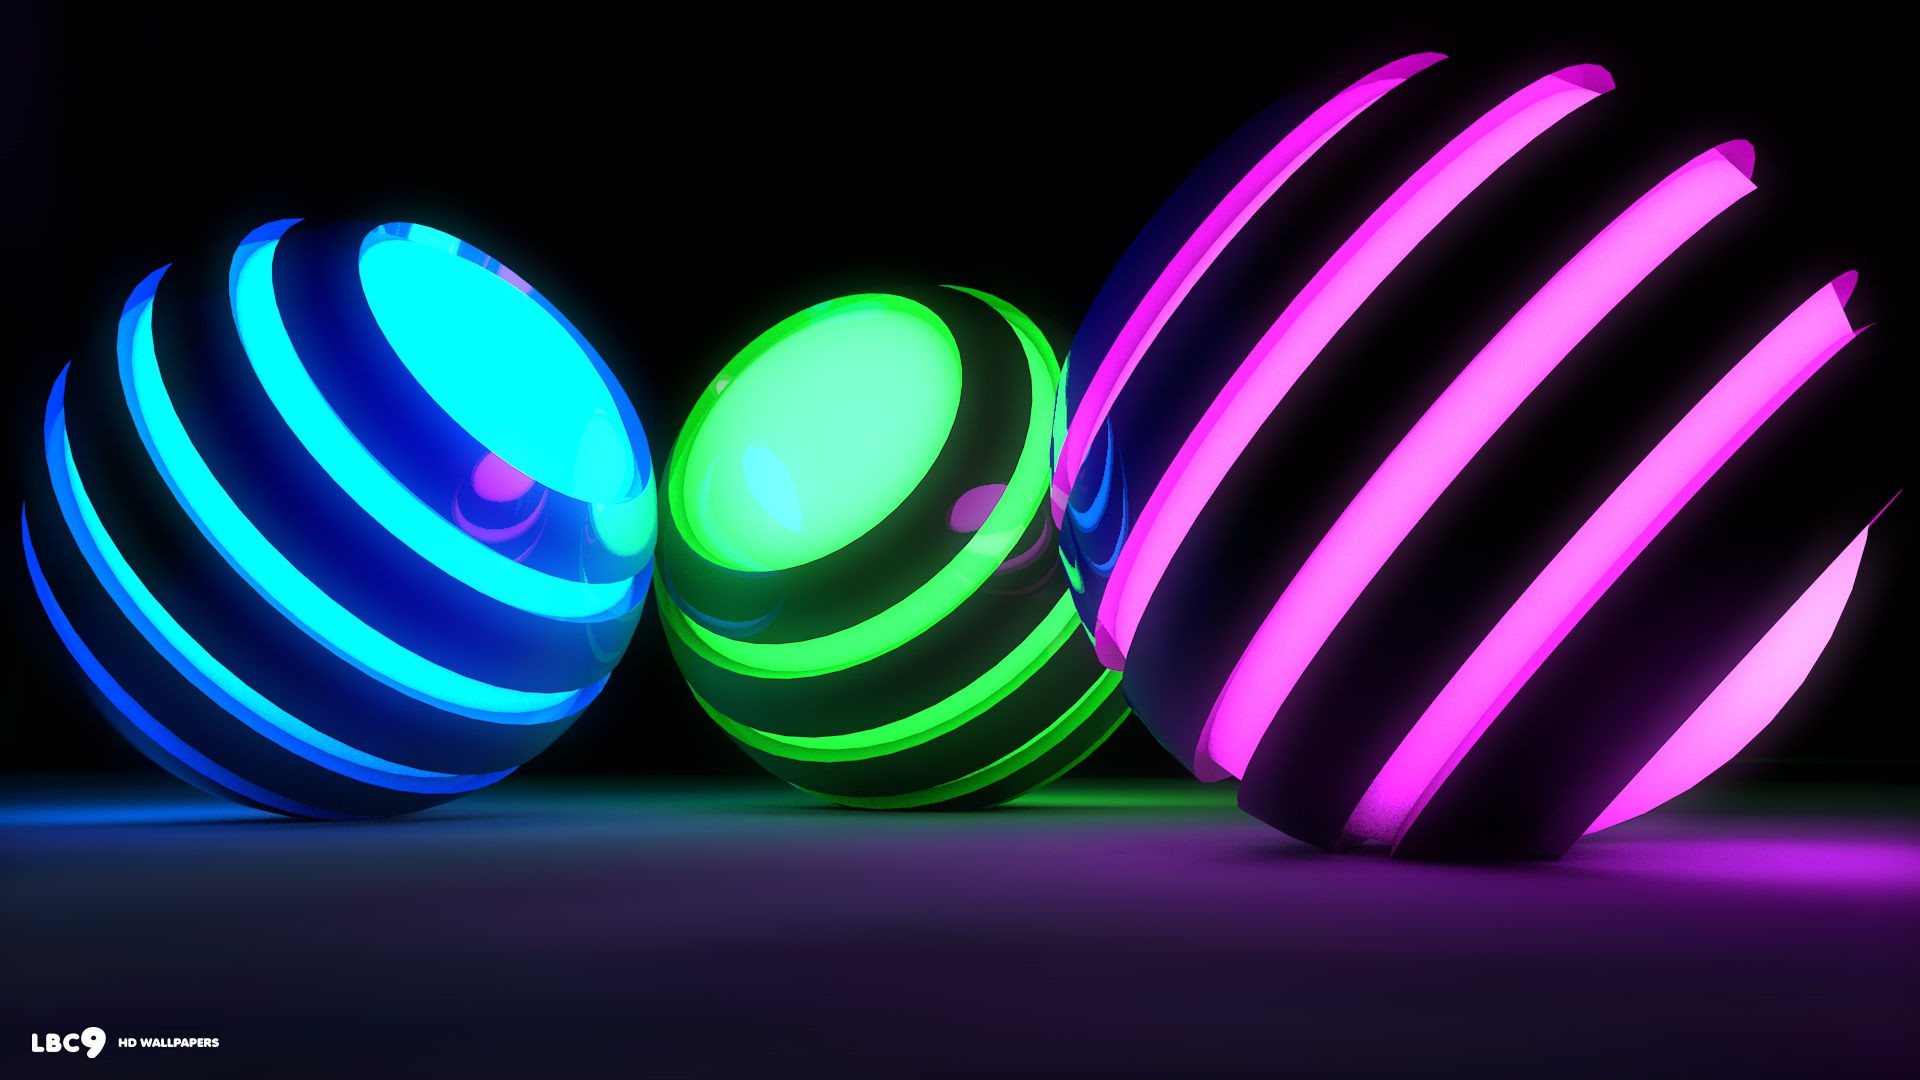 Cool Neon Dragon Backgrounds – HD Wallpapers   In Neon Color   Pinterest    Neon colors, Background hd wallpaper and Neon